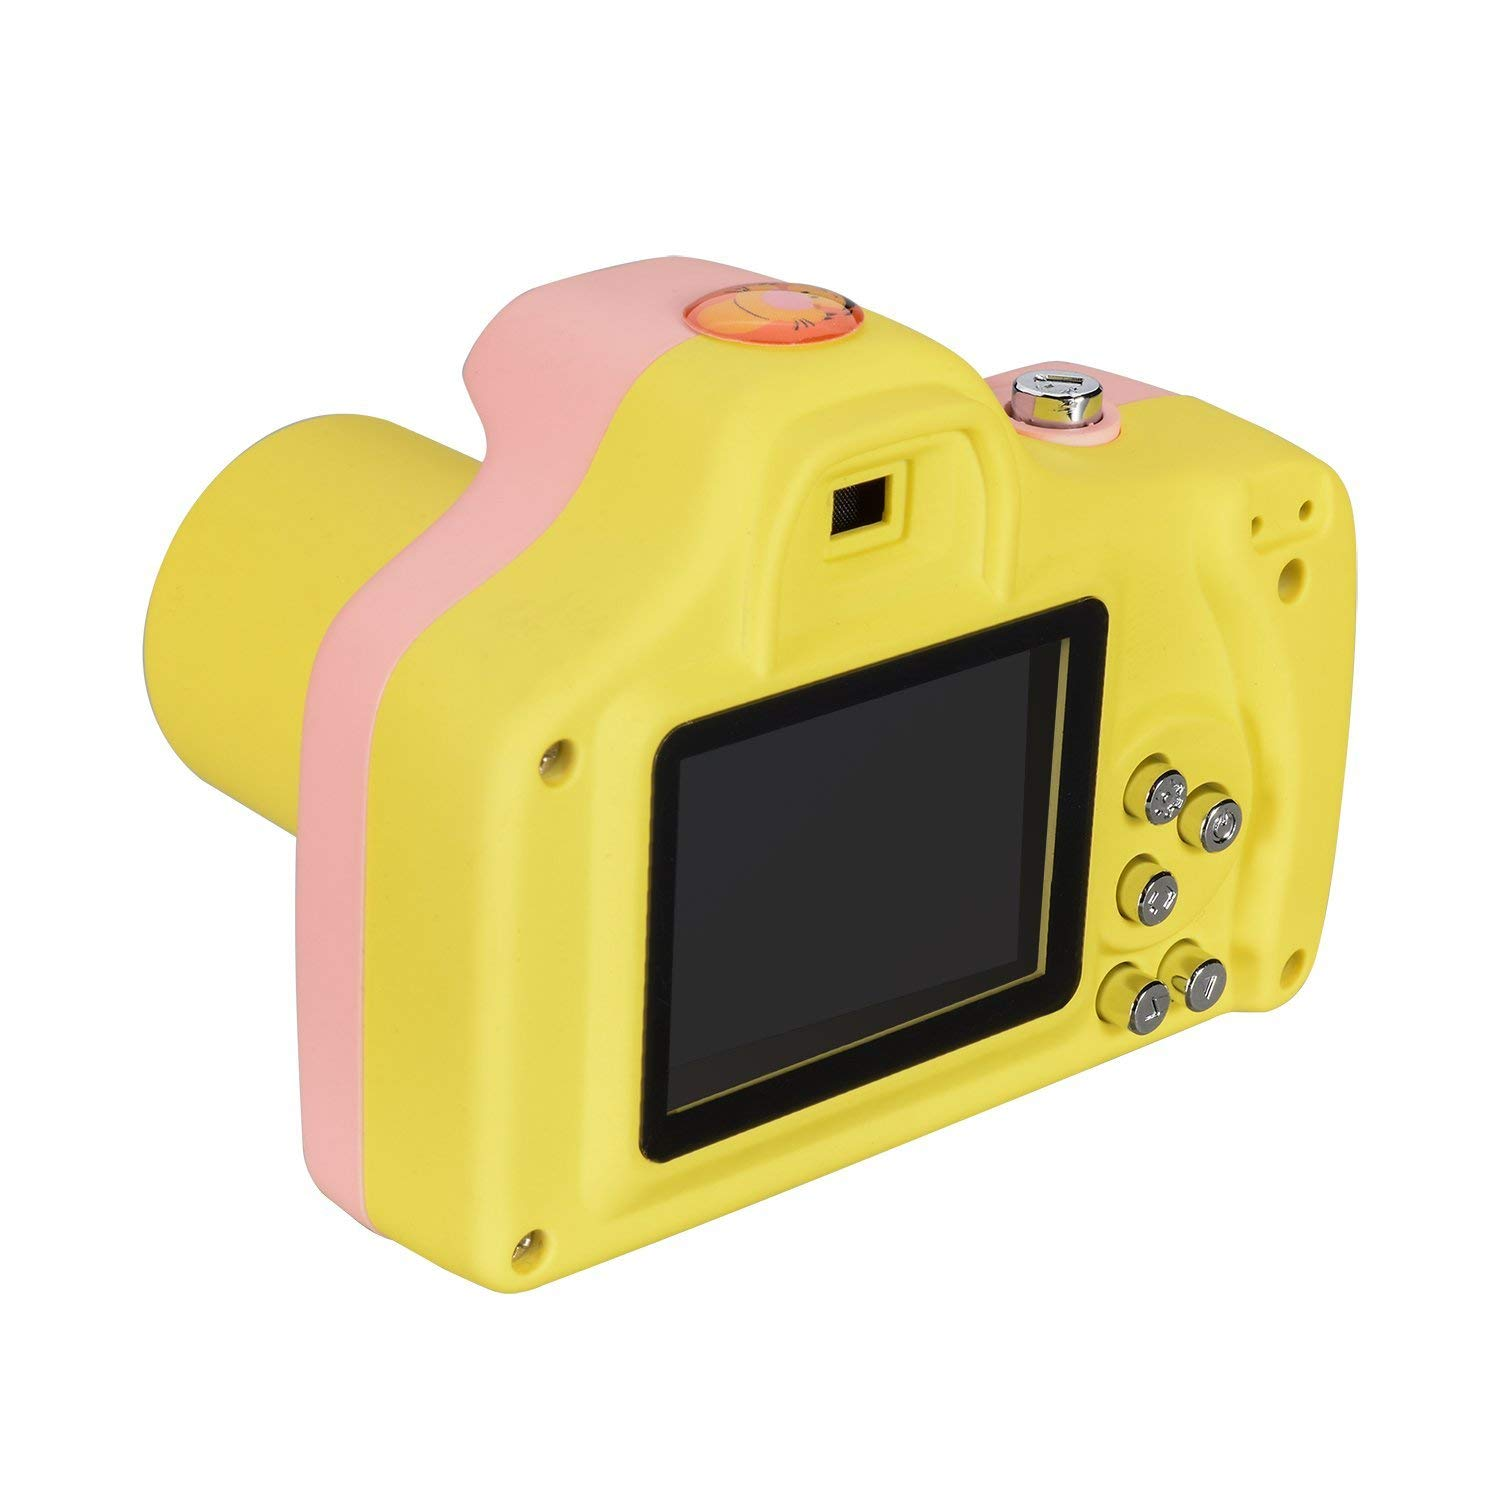 PANNOVO YT001 Mini 1.5 Inch Screen Children Kids Digital Camera with 8GB Cards(Pink) by PANNOVO (Image #3)